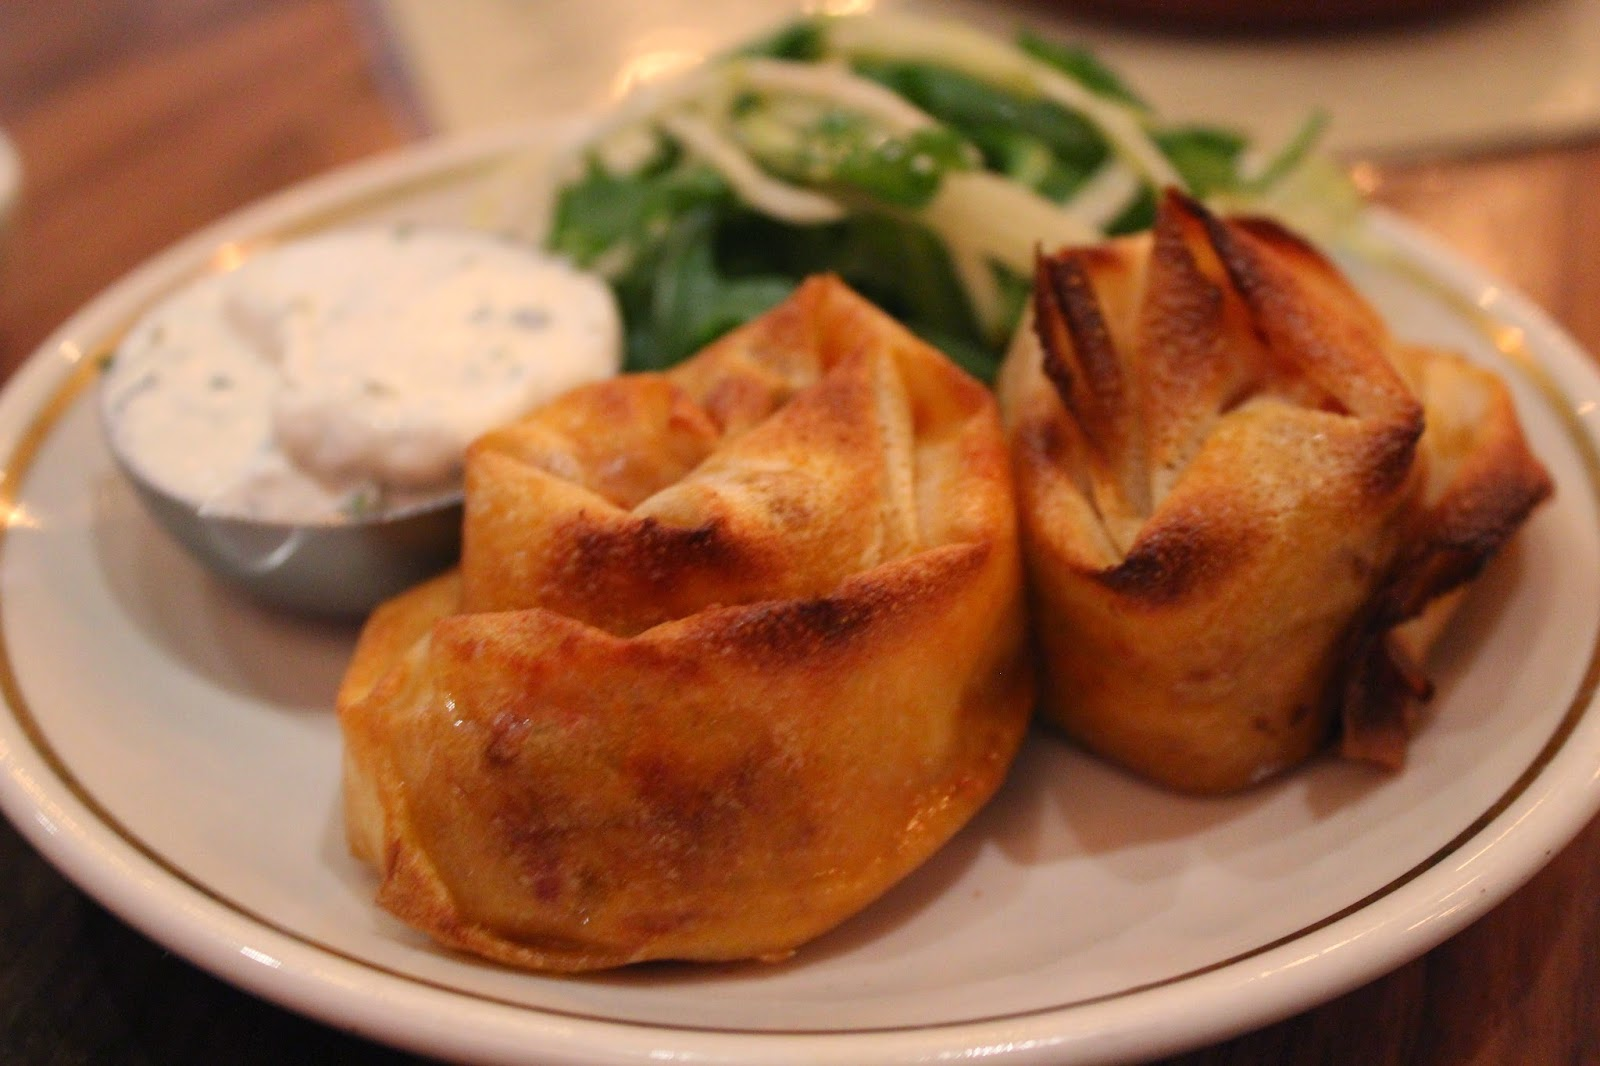 Basturma and cheese rolls at Sarma, Somerville, Mass.